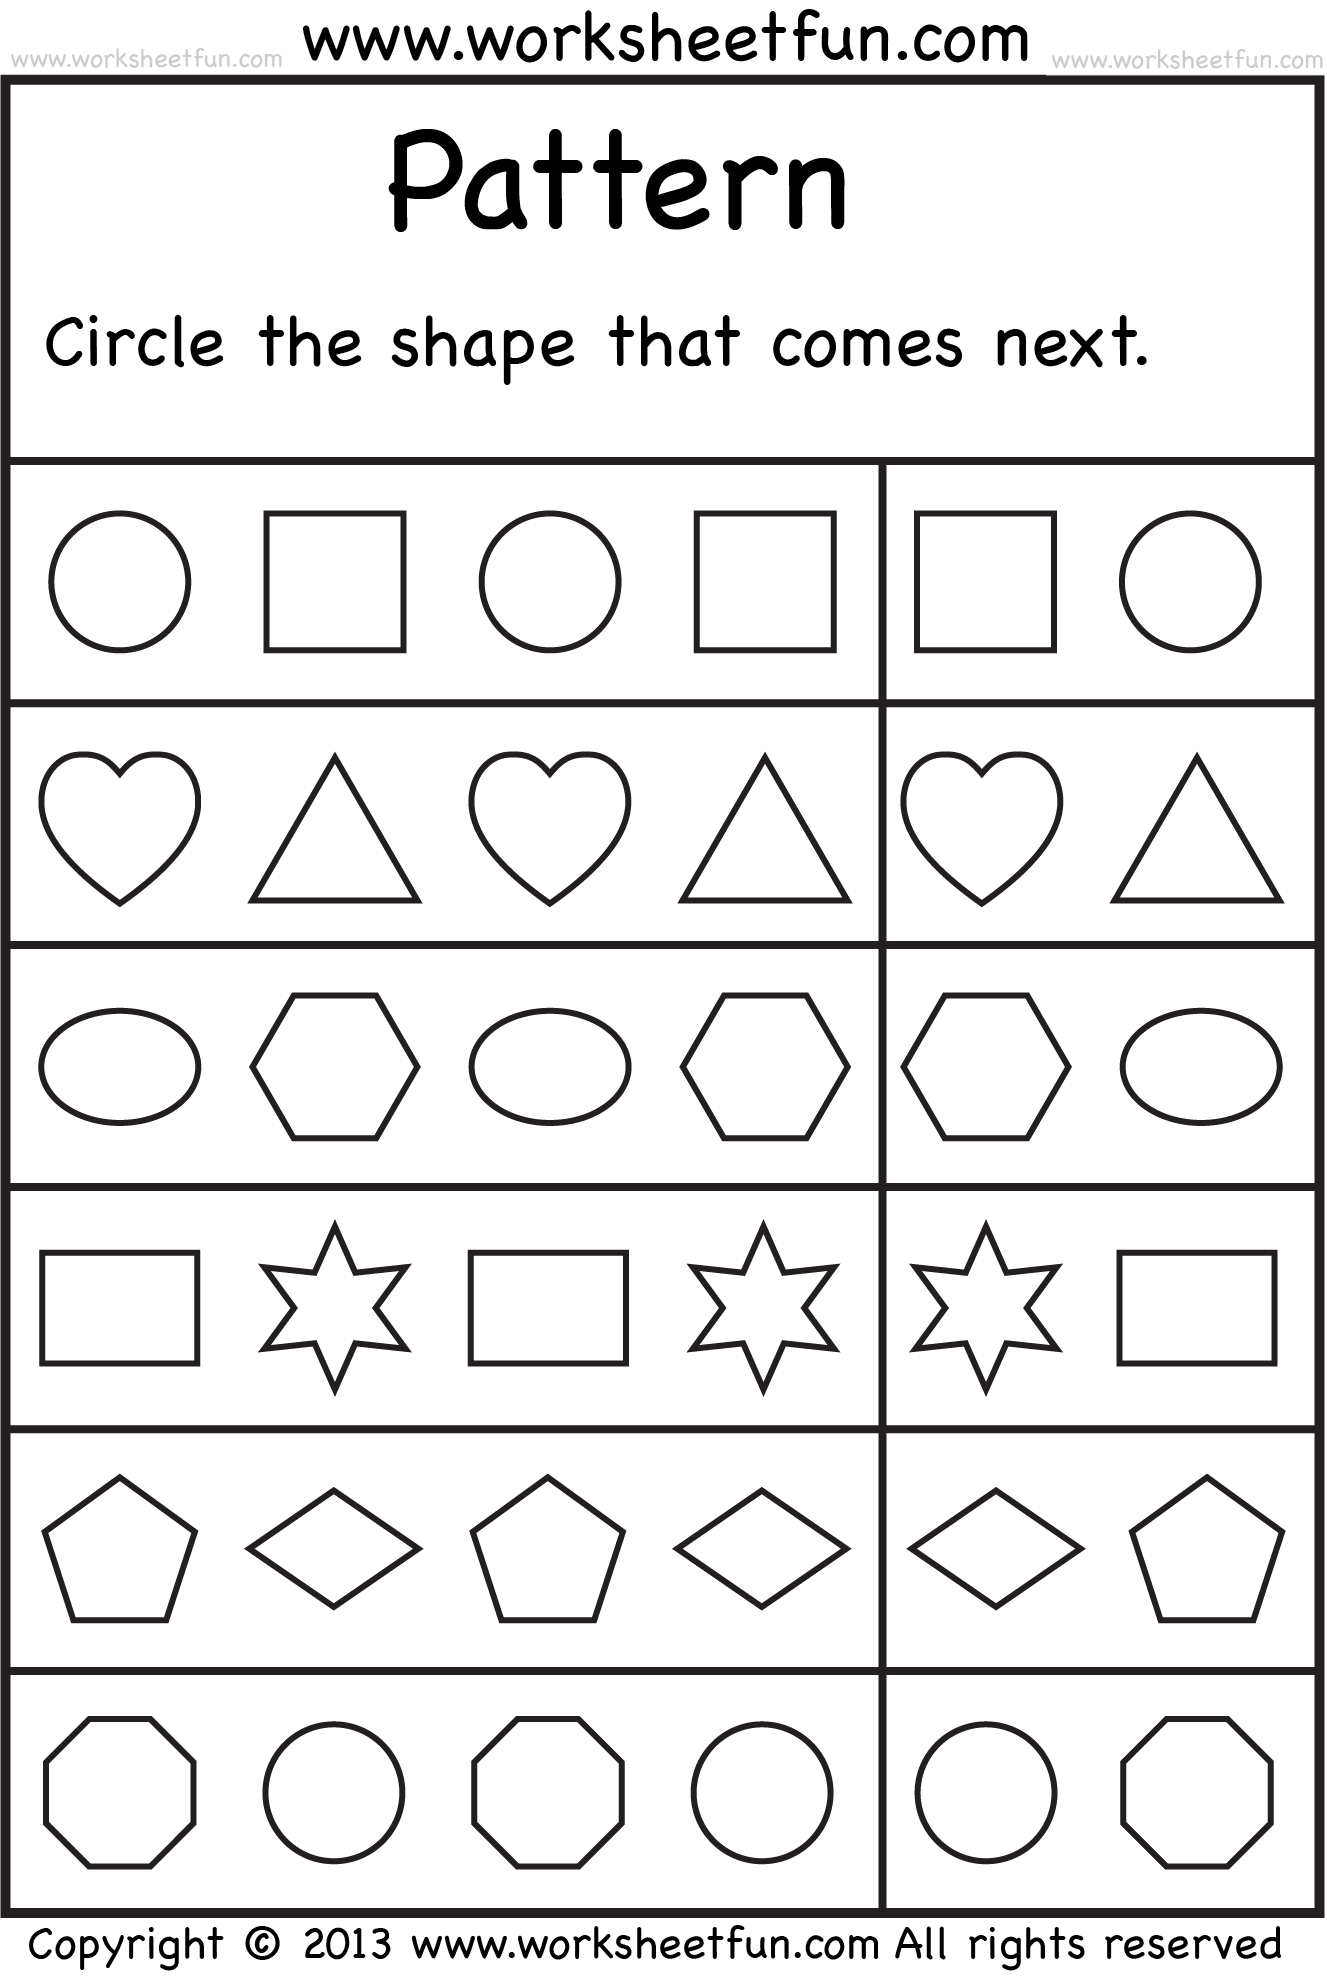 worksheet Free Printable Shapes Worksheets For Preschoolers free printable worksheets worksheetfun 8 best images of patterns preschool shape pattern kindergarten patter